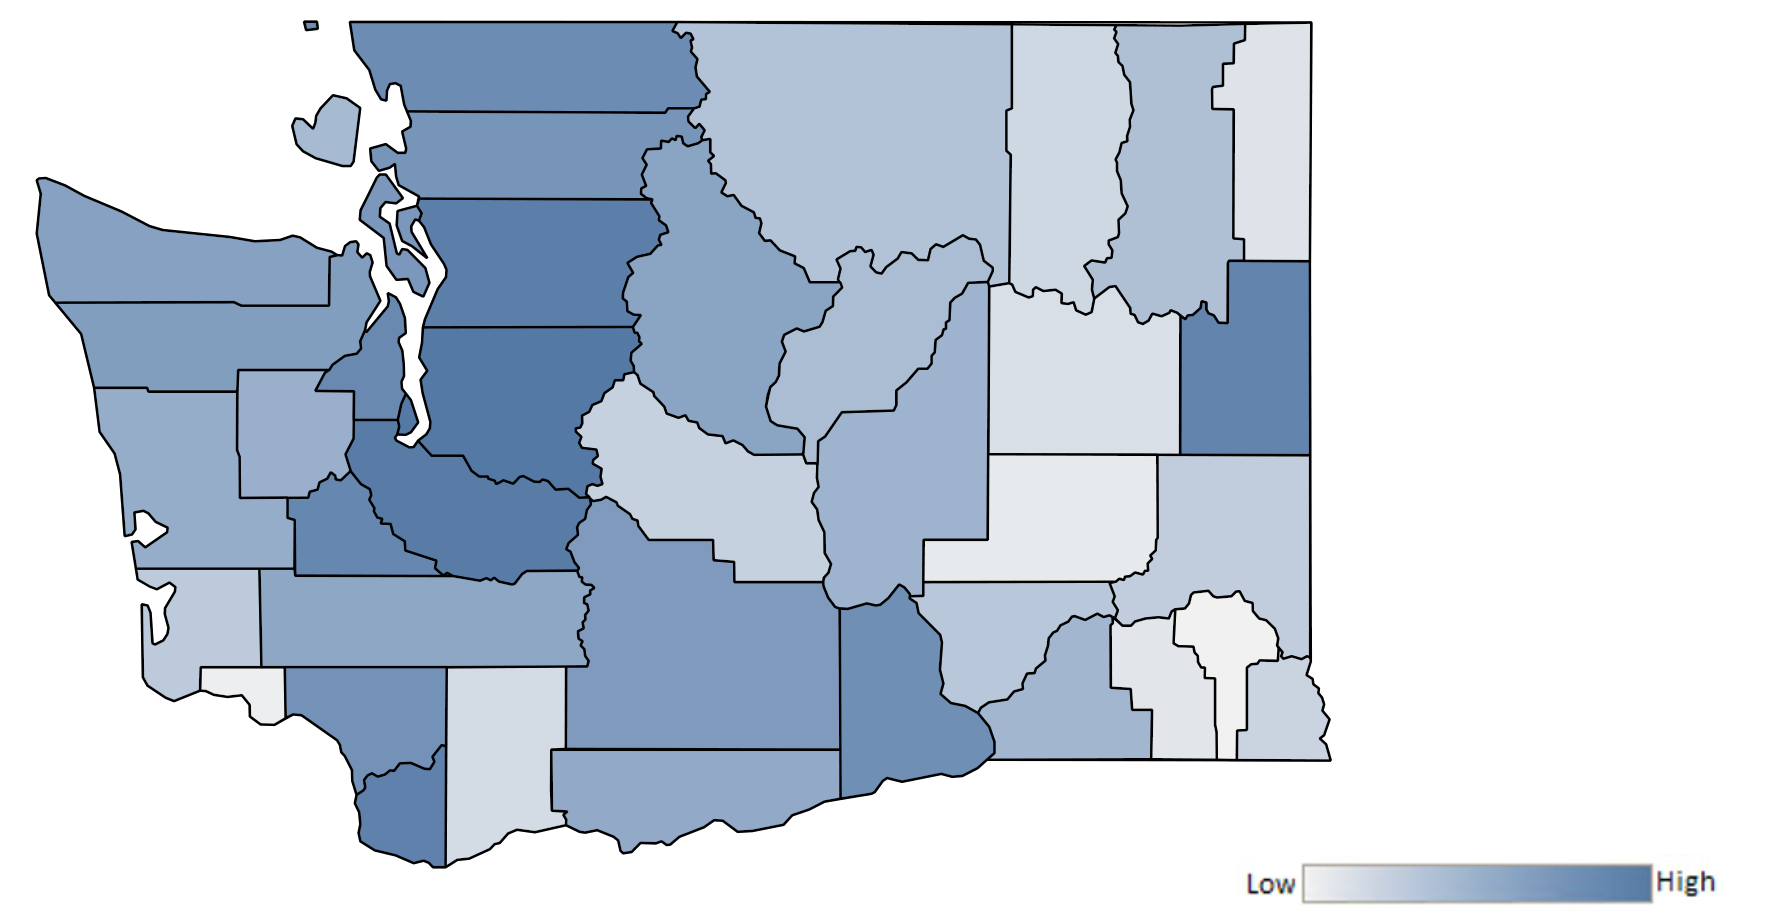 Map of Washington counties indicating relative number of complaints from low to high. See attached CSV file for complaint data by jurisdiction.